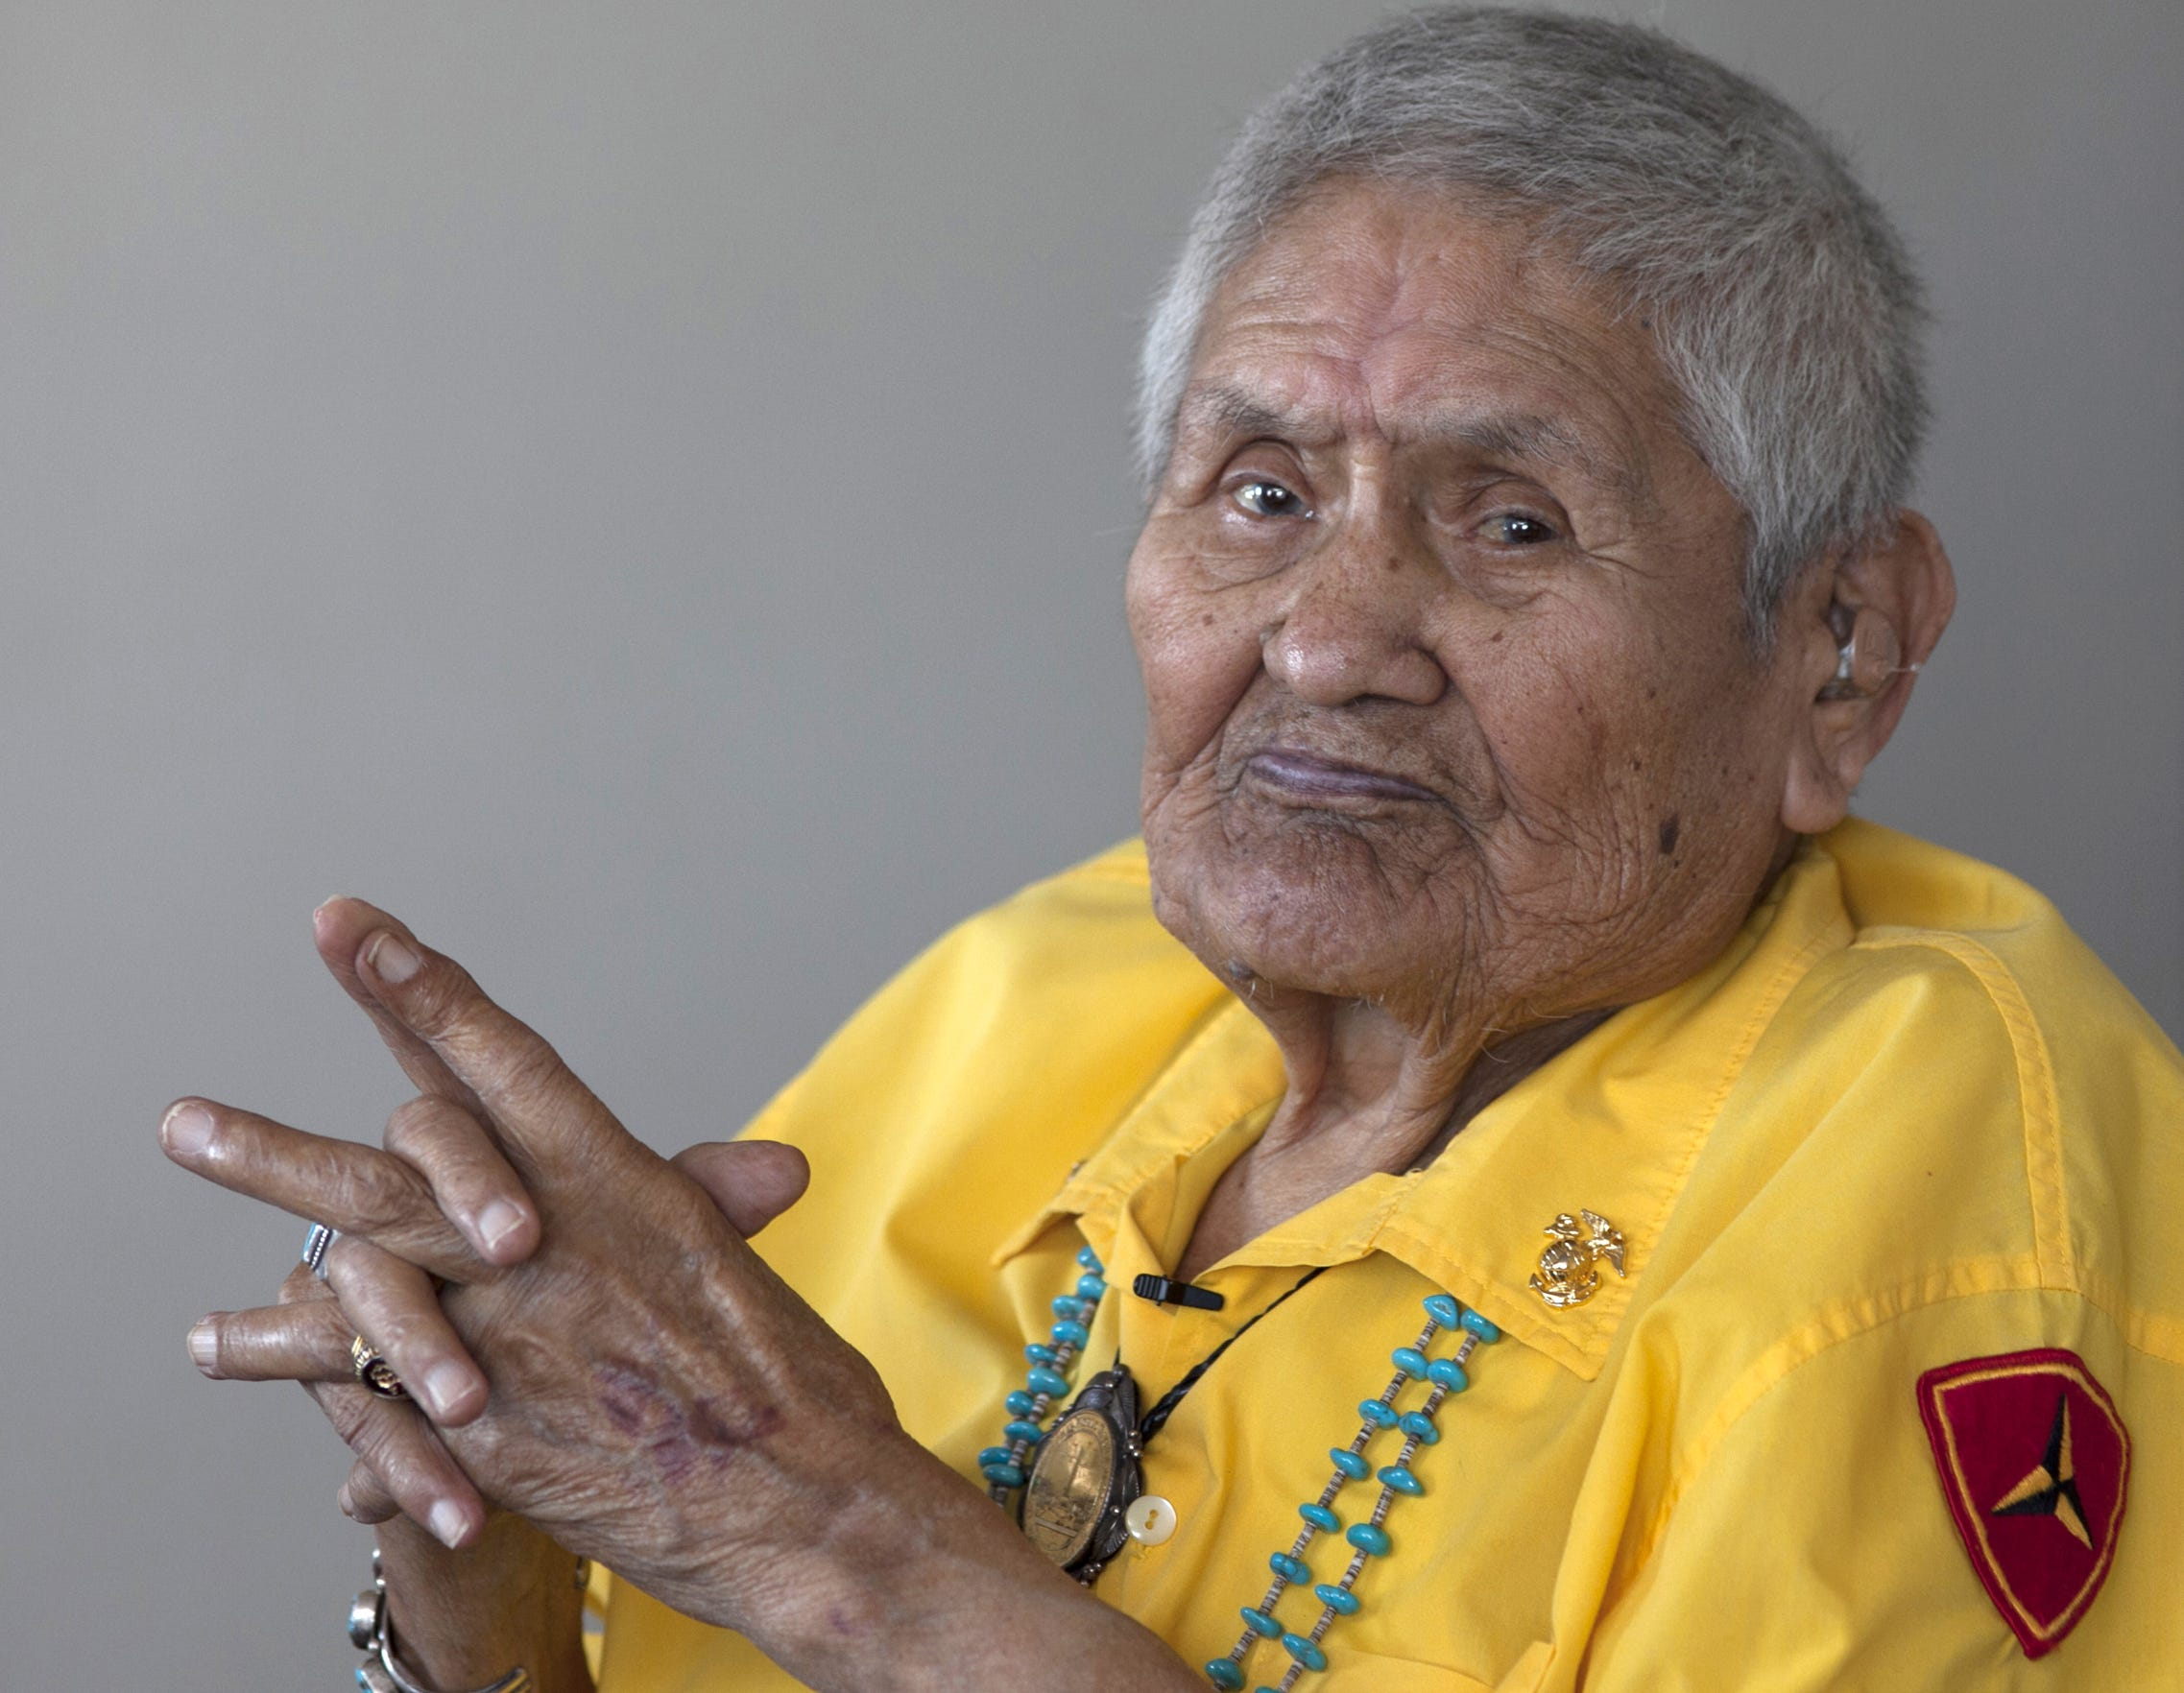 Portrait of 90-year-old Navajo Code Talker Chester Nez, taken in his  Albuquerque home on June 23, 2011. The  Code Talkers helped create an unbreakable military radio code used during World War II.